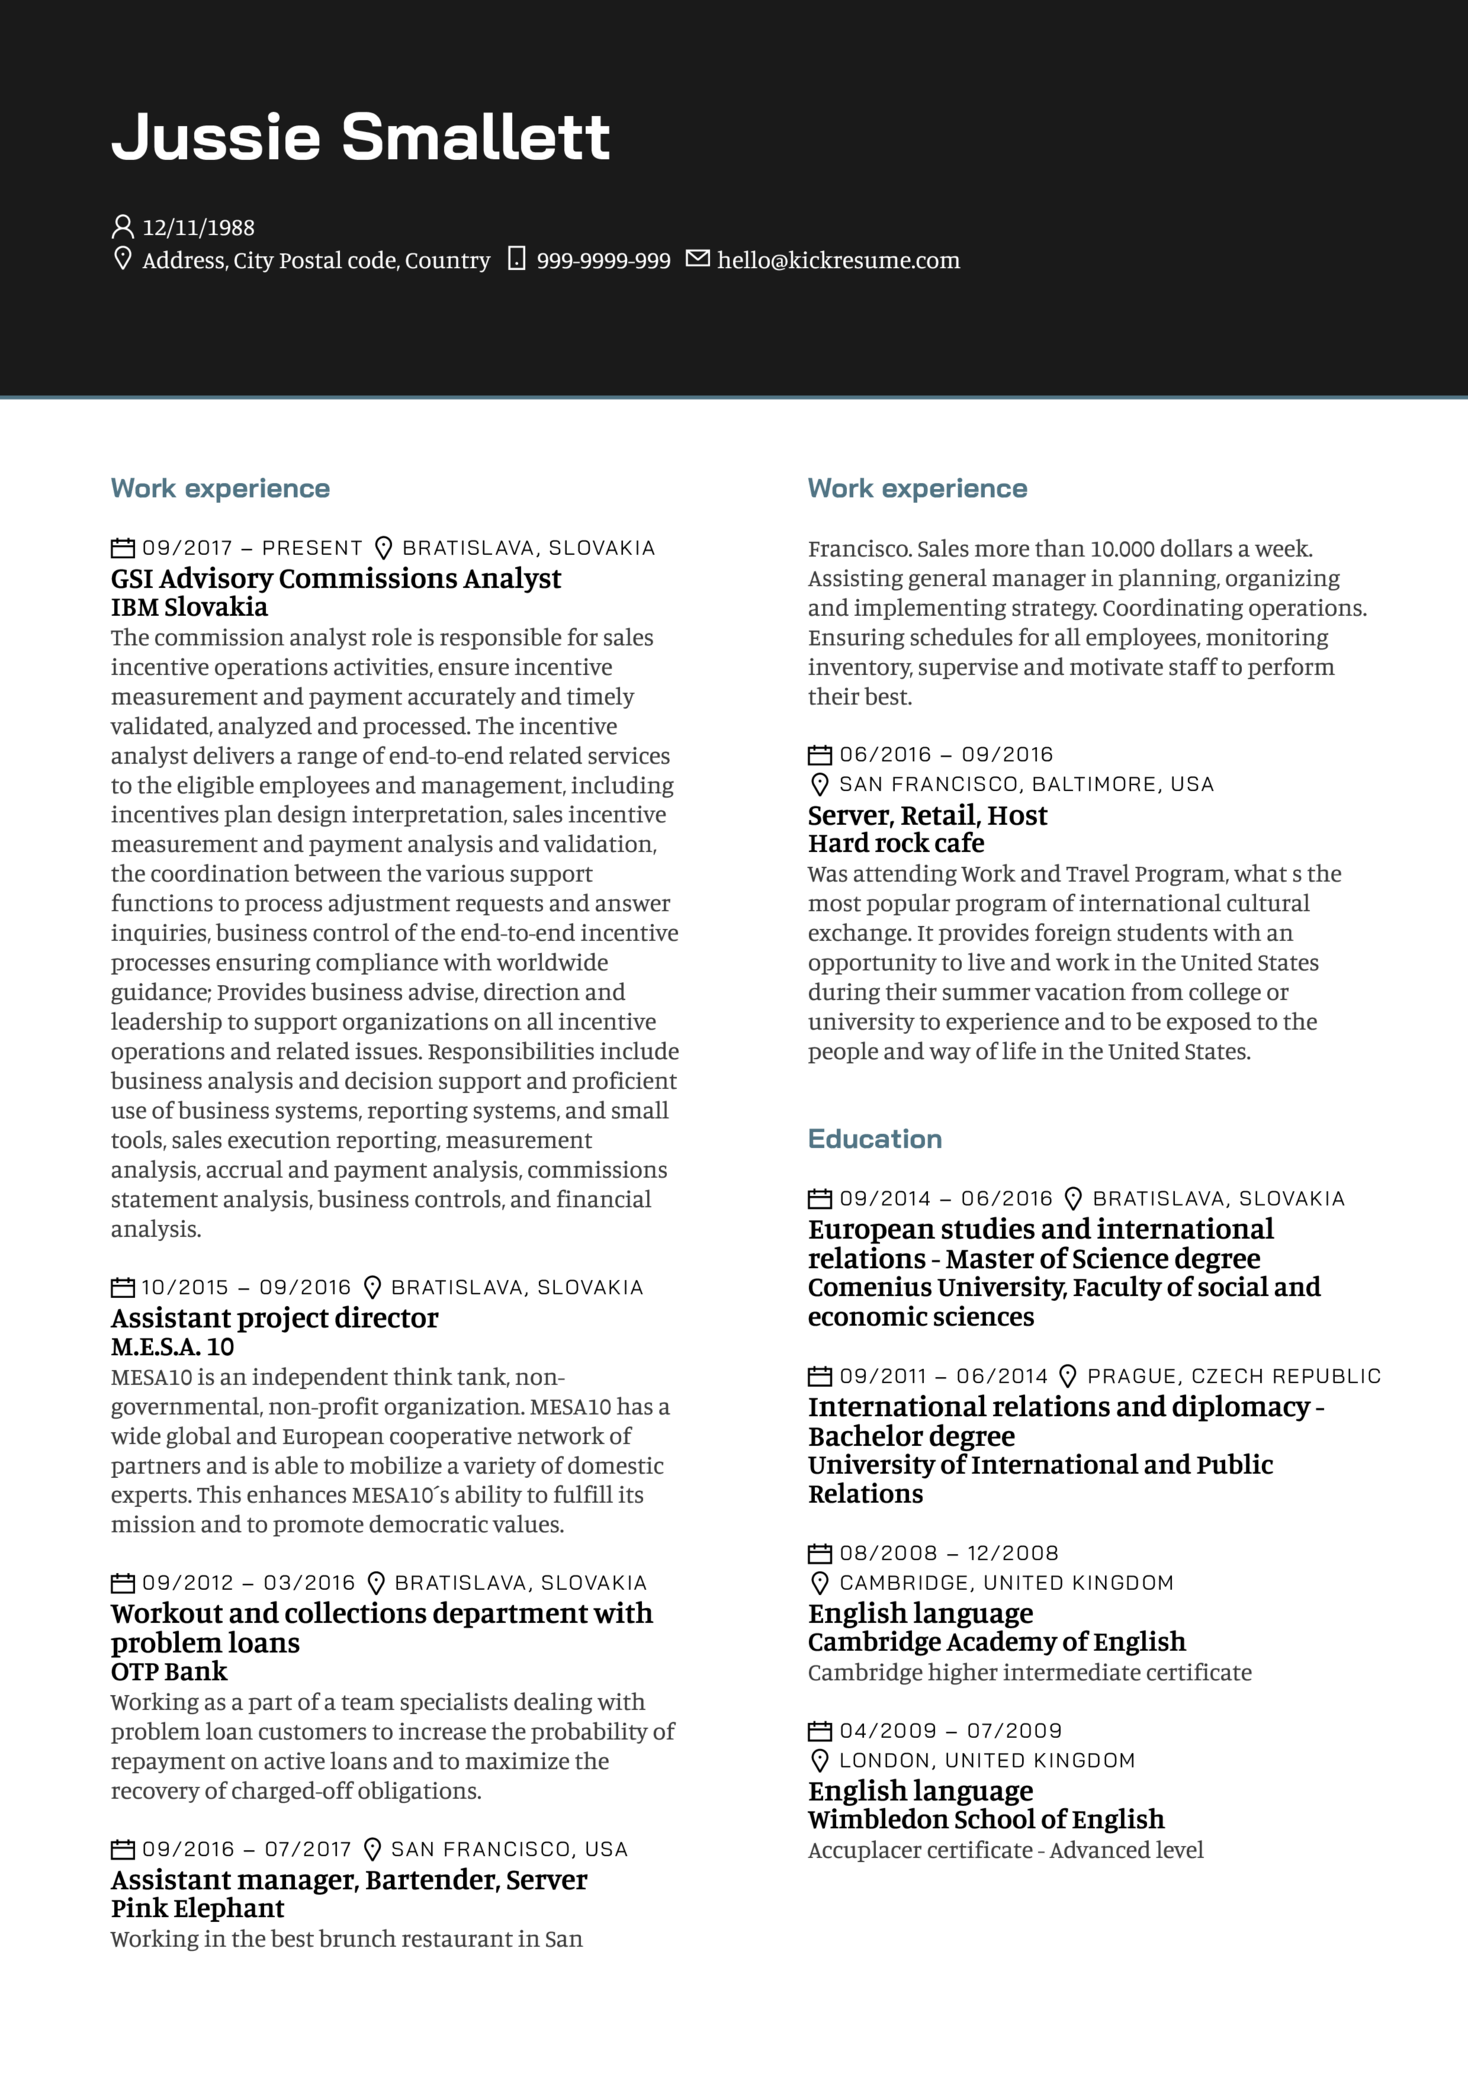 IBM Commission and Business Analyst Resume Sample (parte 1)